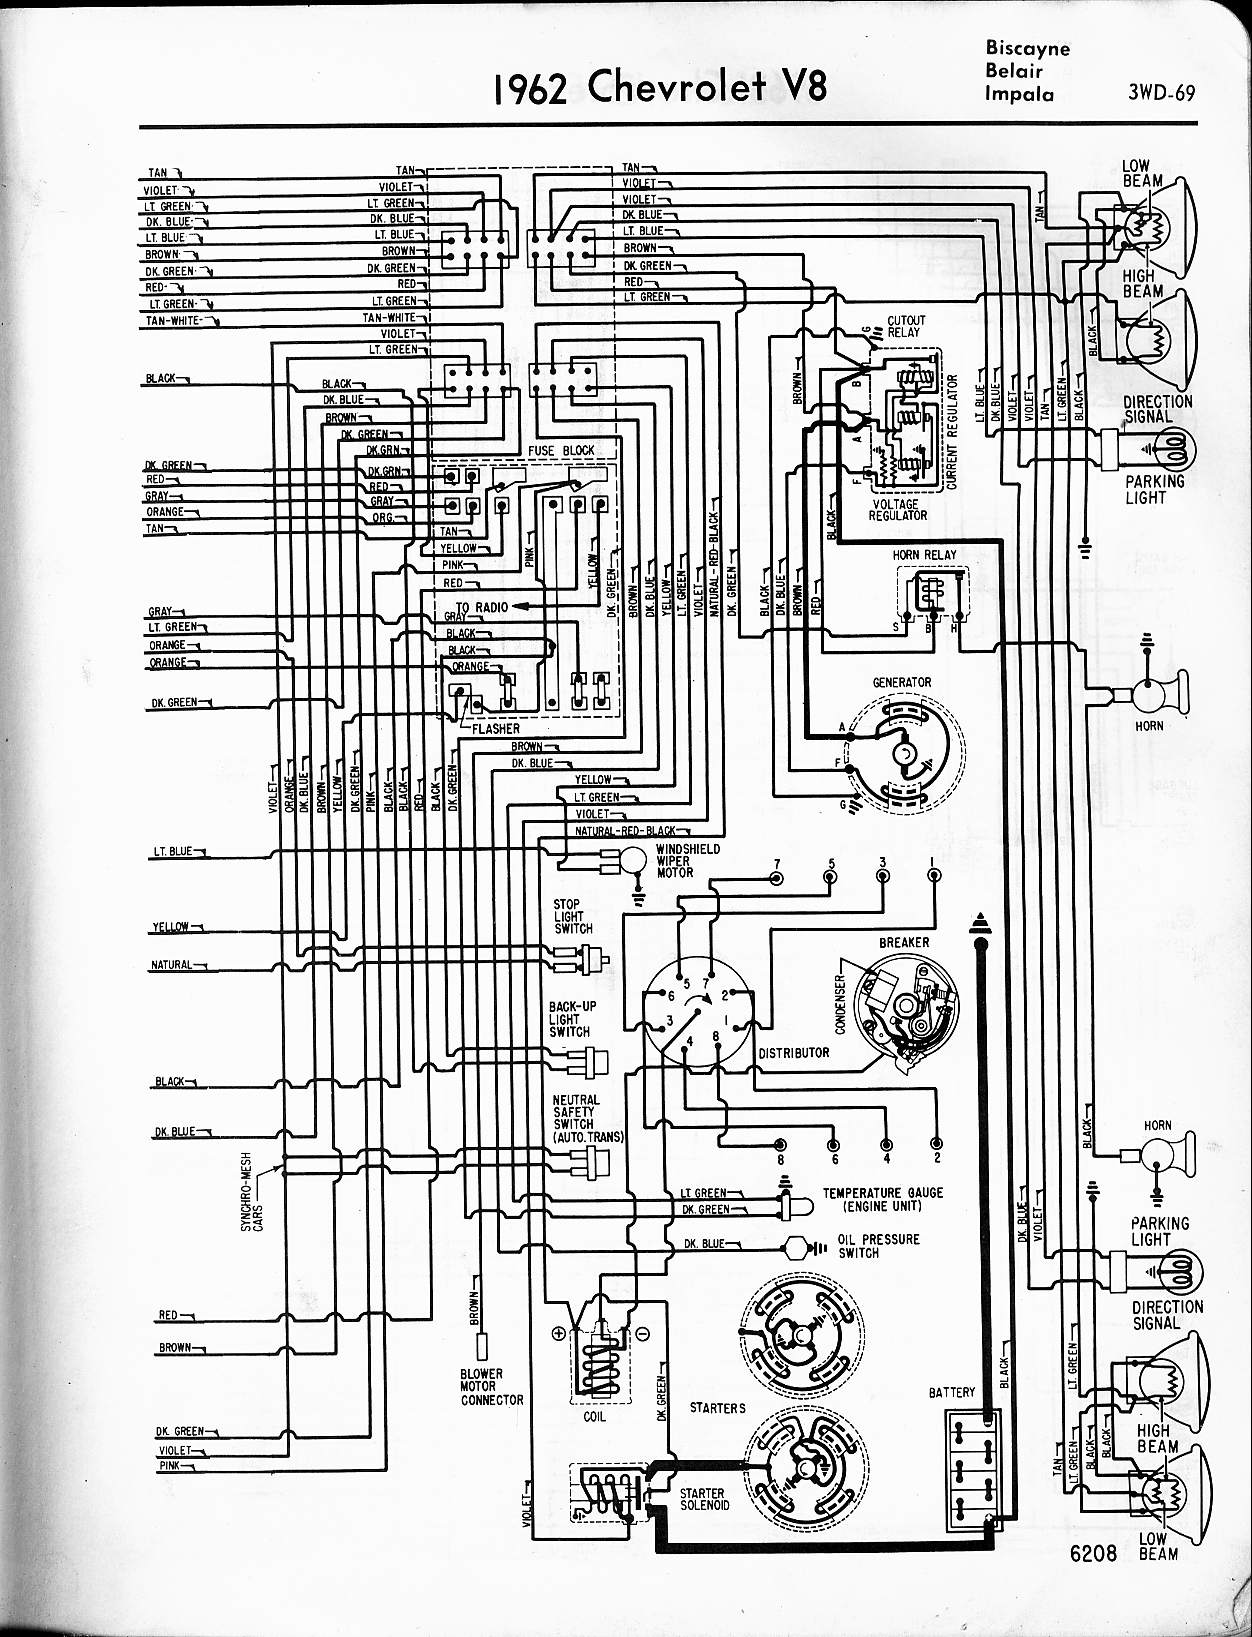 1965 Impala Wiring Diagram Expert Schematics Camaro Additionally Windshield Wiper 57 65 Chevy Diagrams Engine 1962 V8 Biscayne Belair